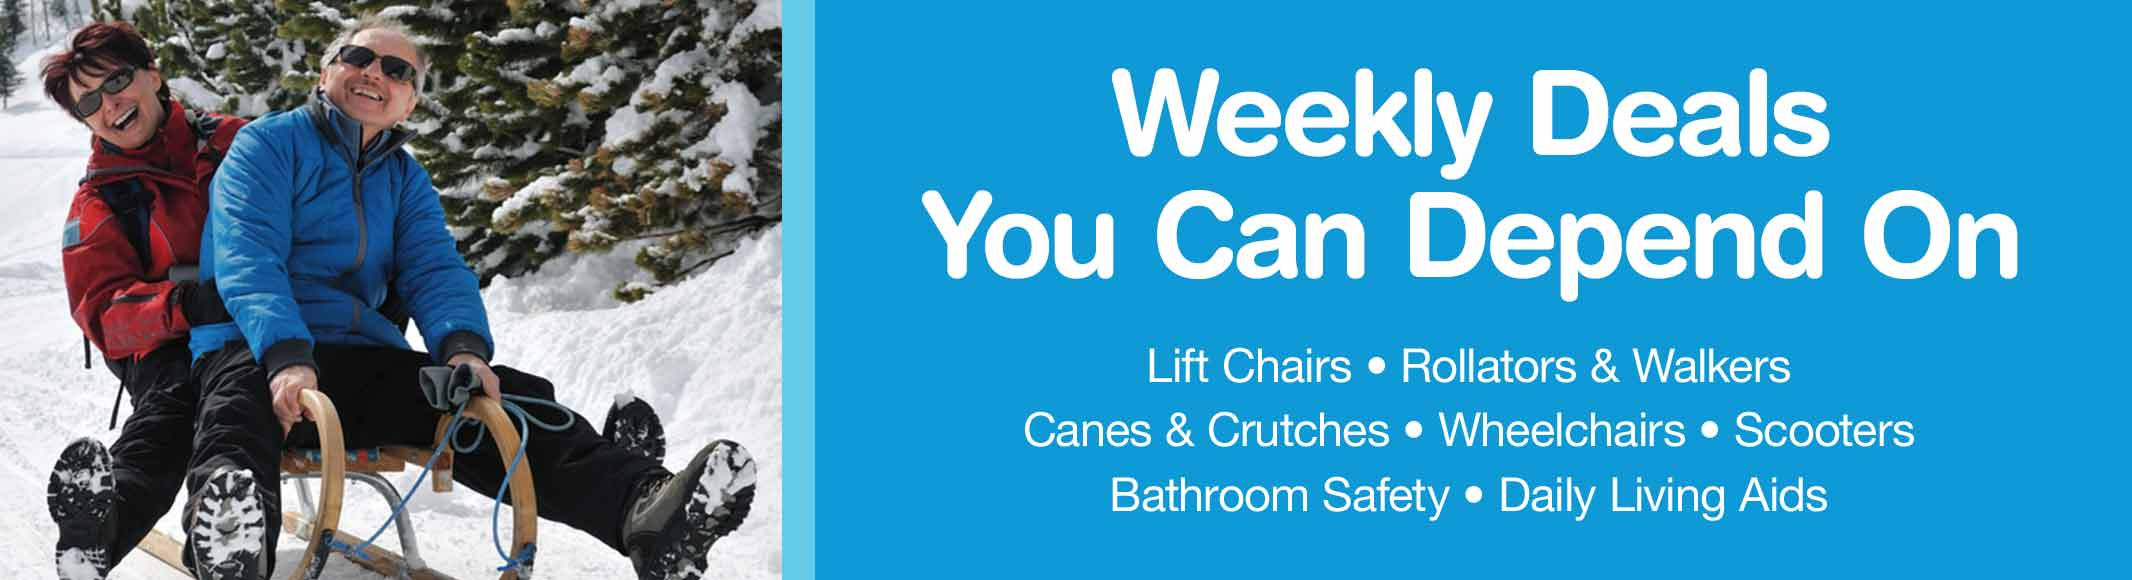 Weekly deals you can depend on. Lift chairs, rollators & walkers, canes & crutches, wheelchairs, scooters, bathroom safety, and daily living aids.